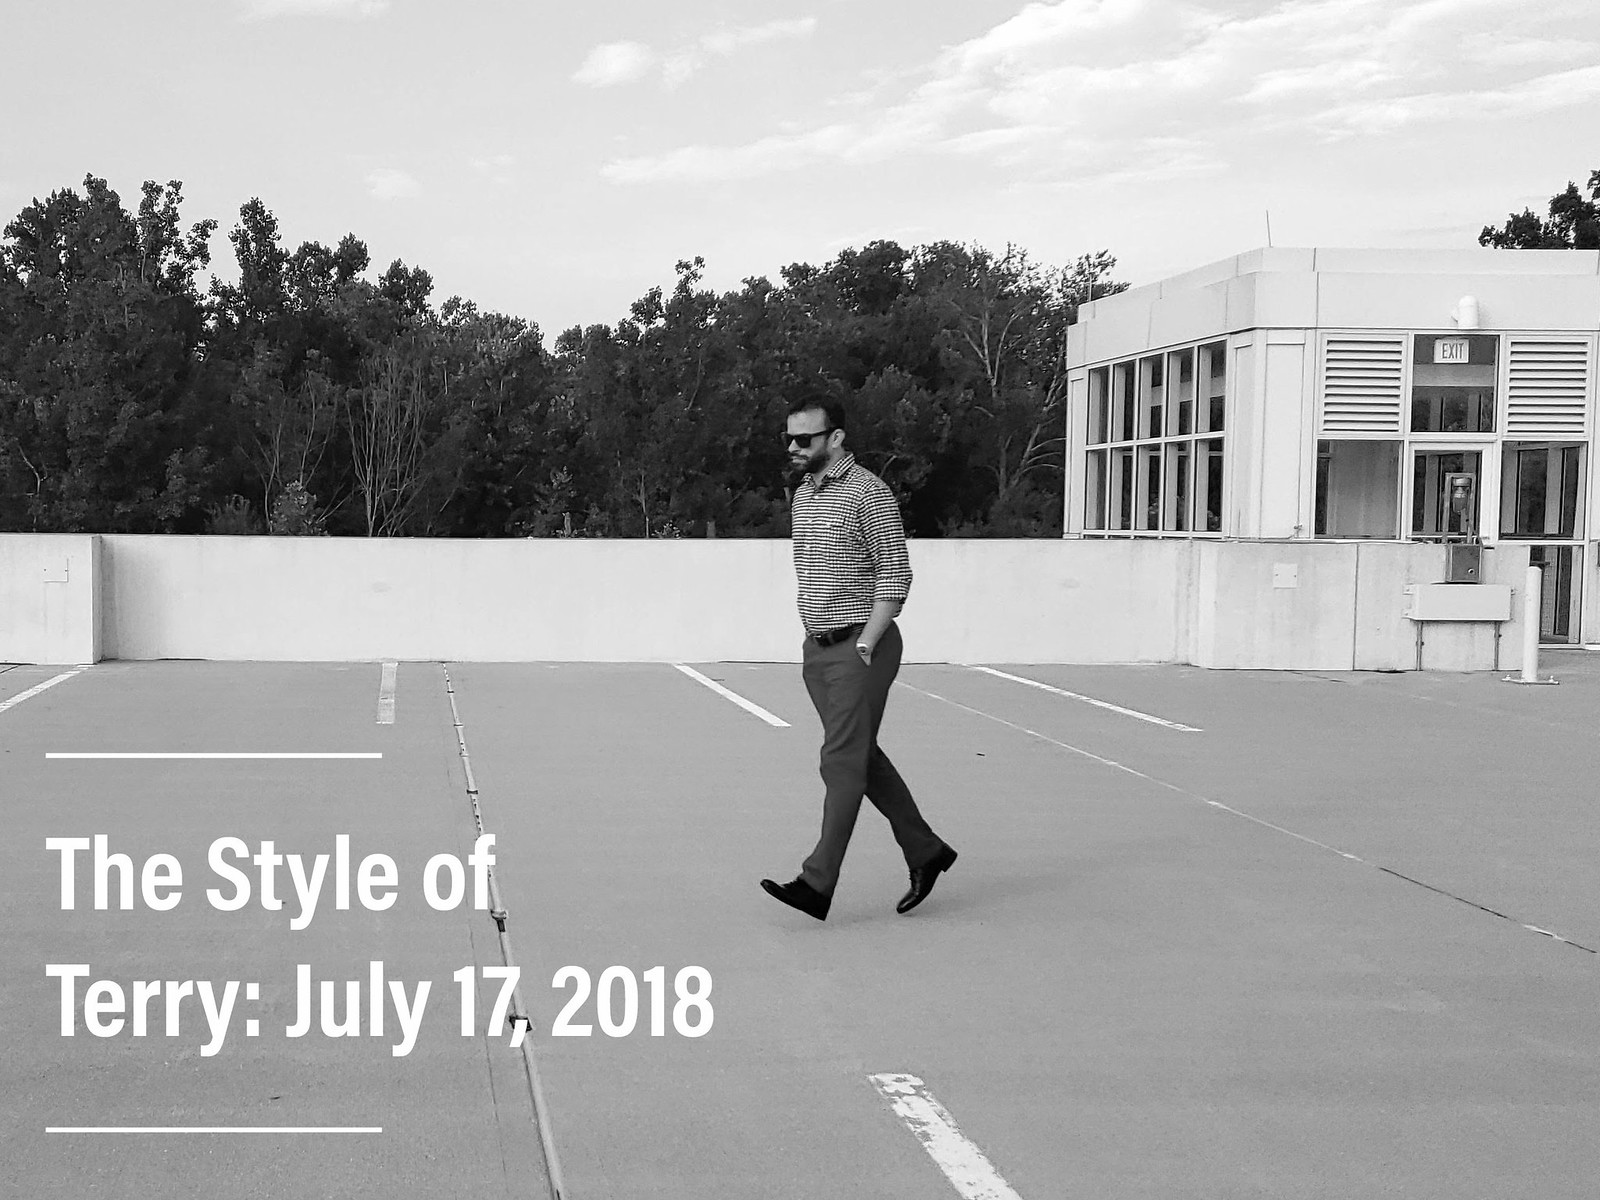 The Style of Terry: 7.17.18